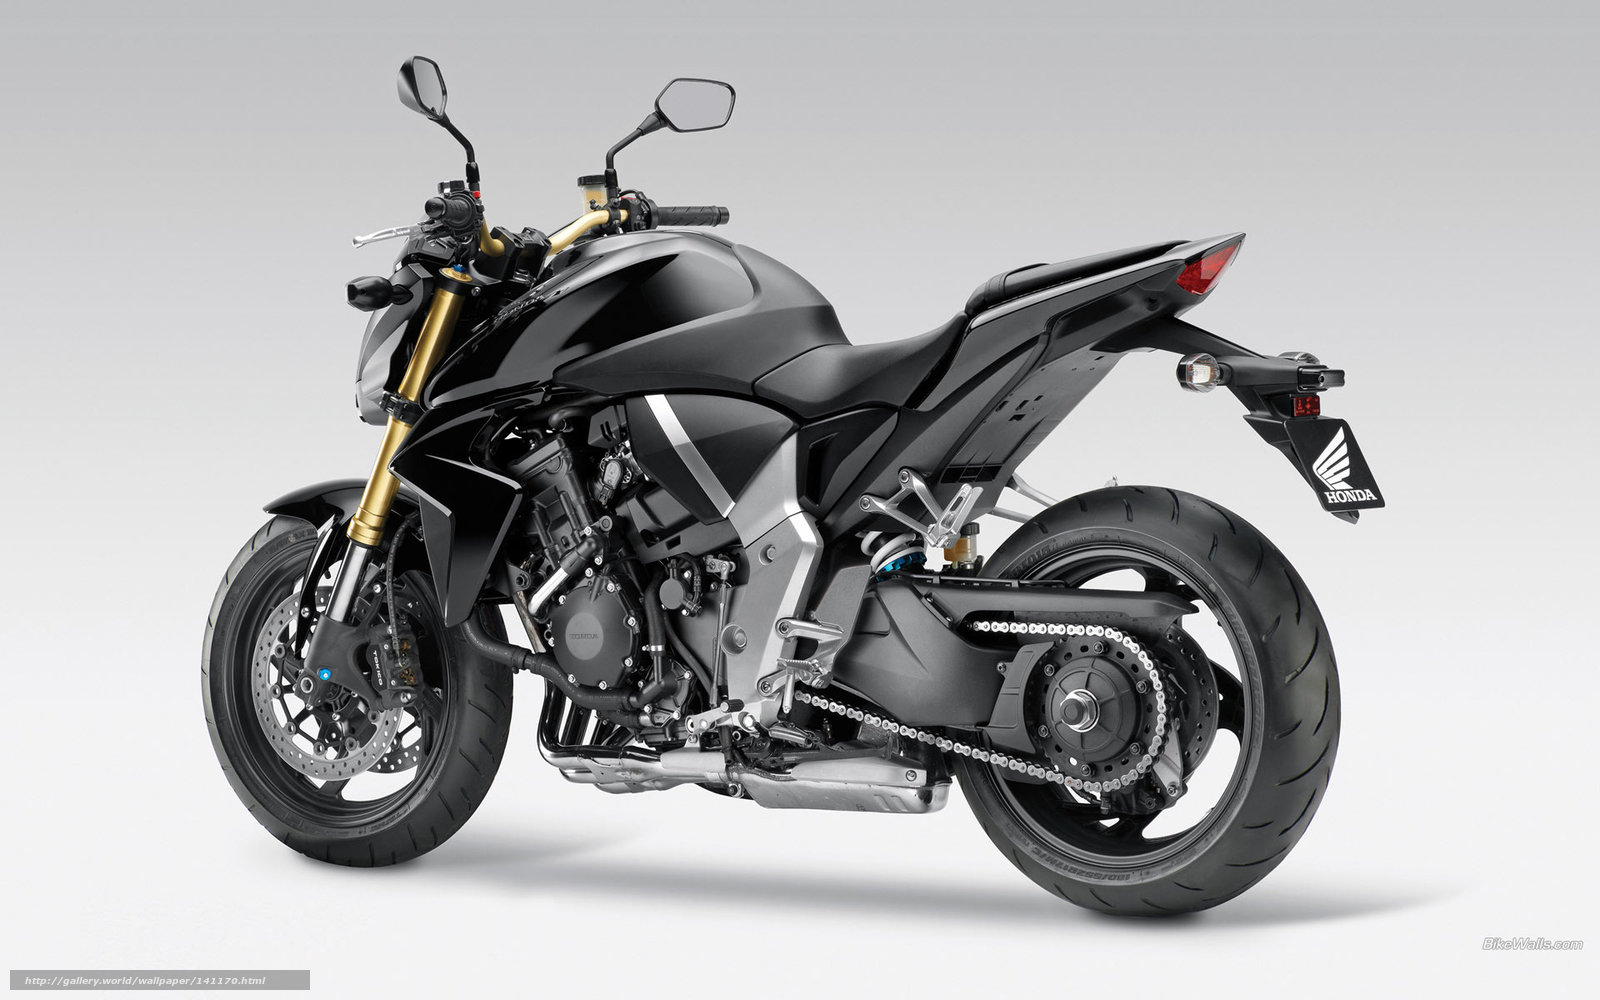 Motorcycle Pictures: Honda CB 1000 R - 2011